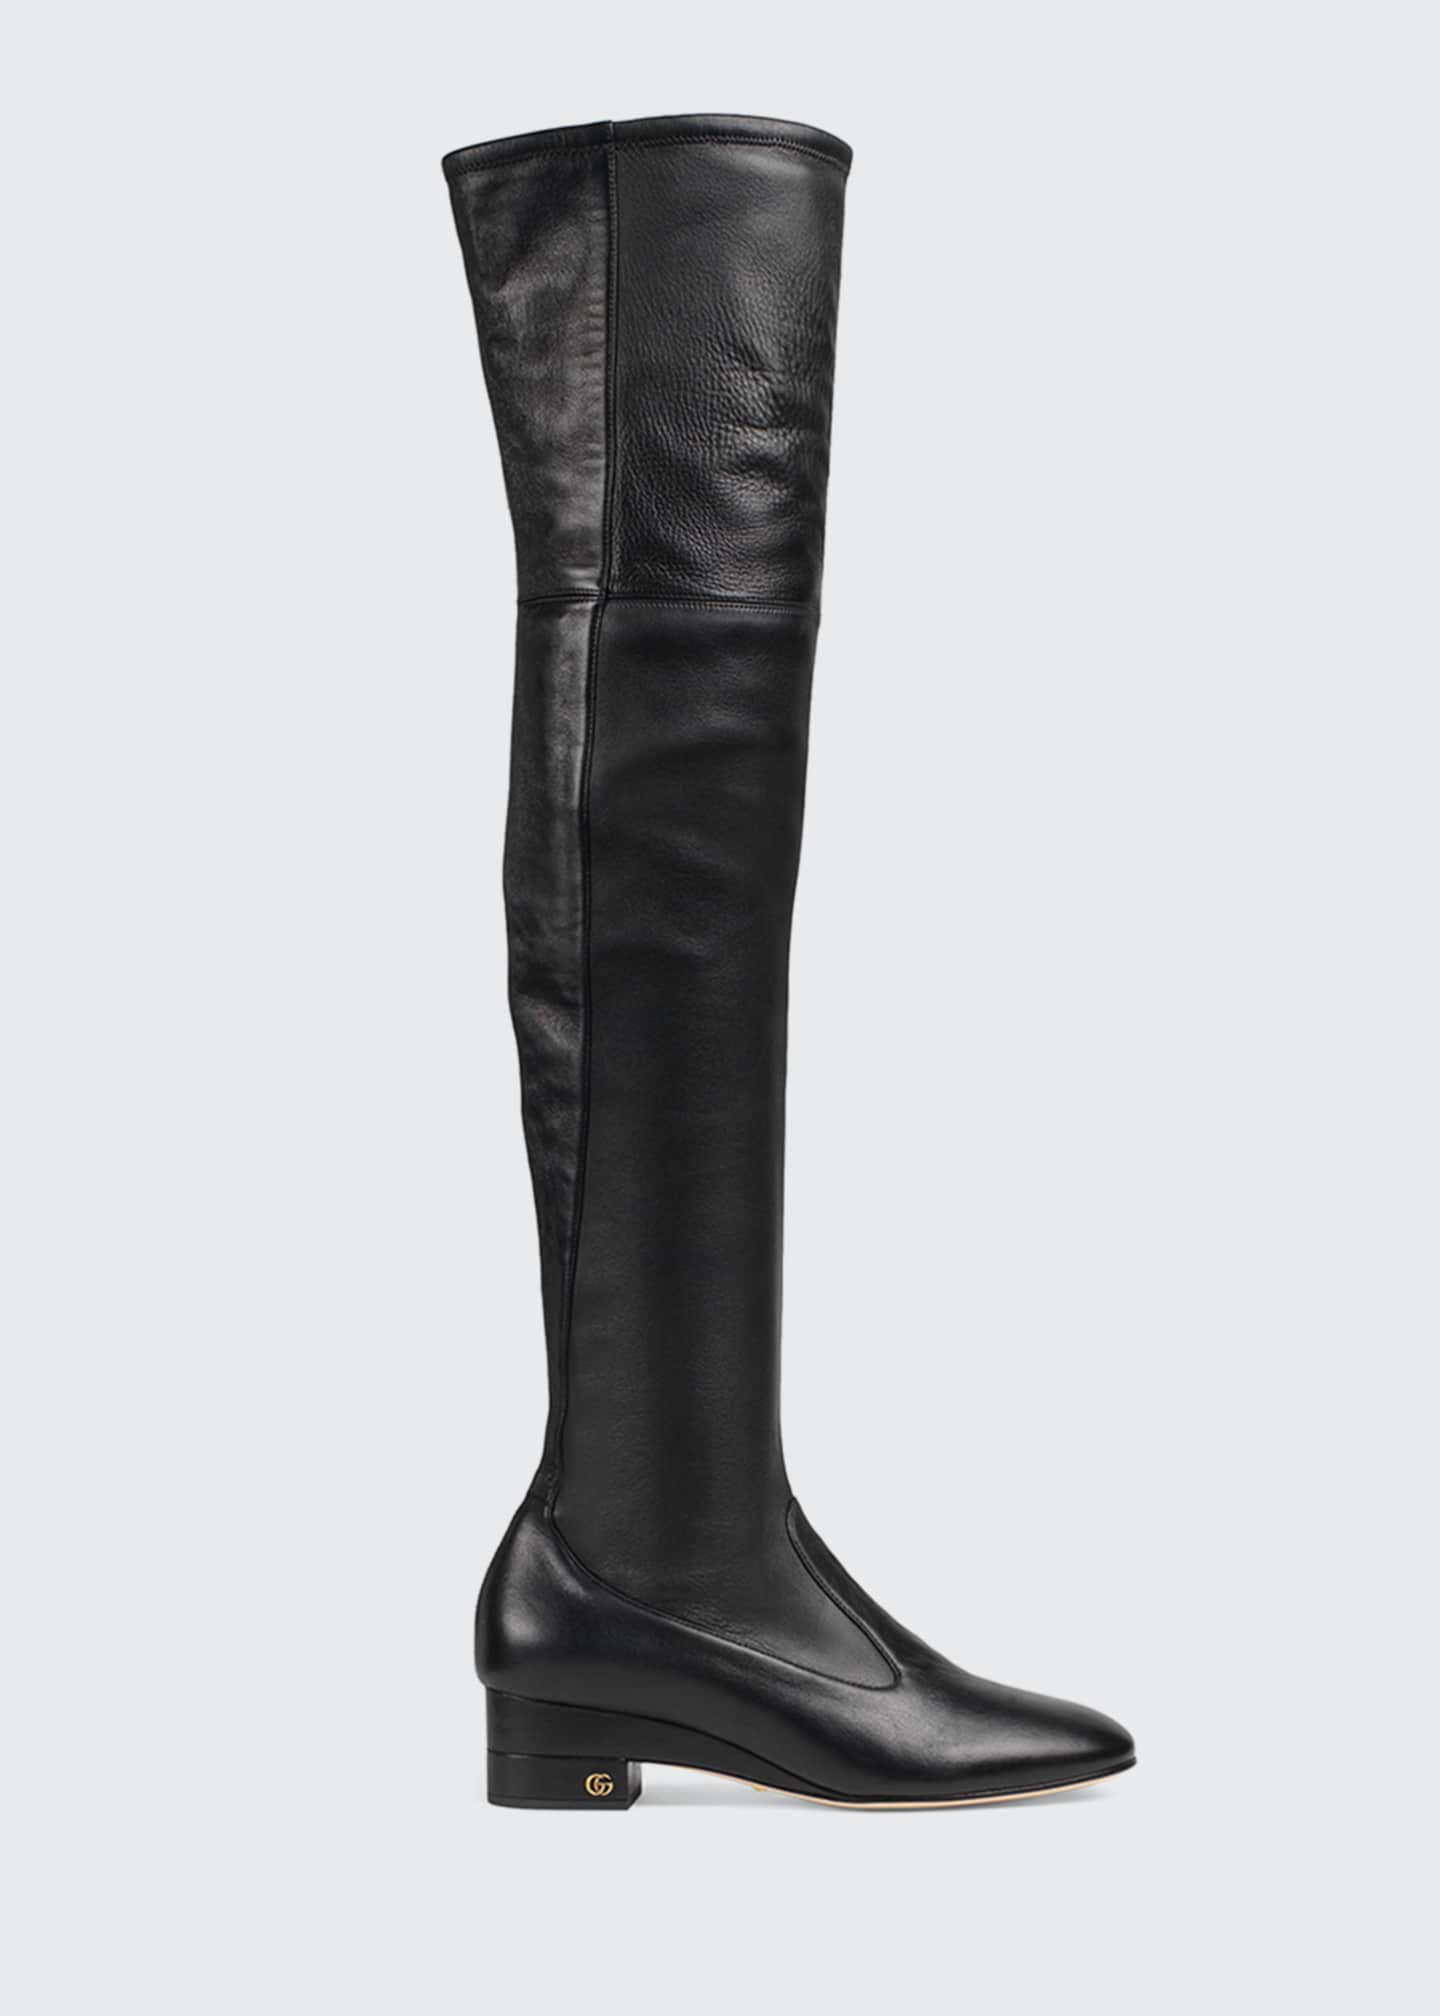 Gucci Claus 45mm Over-the-Knee Boots